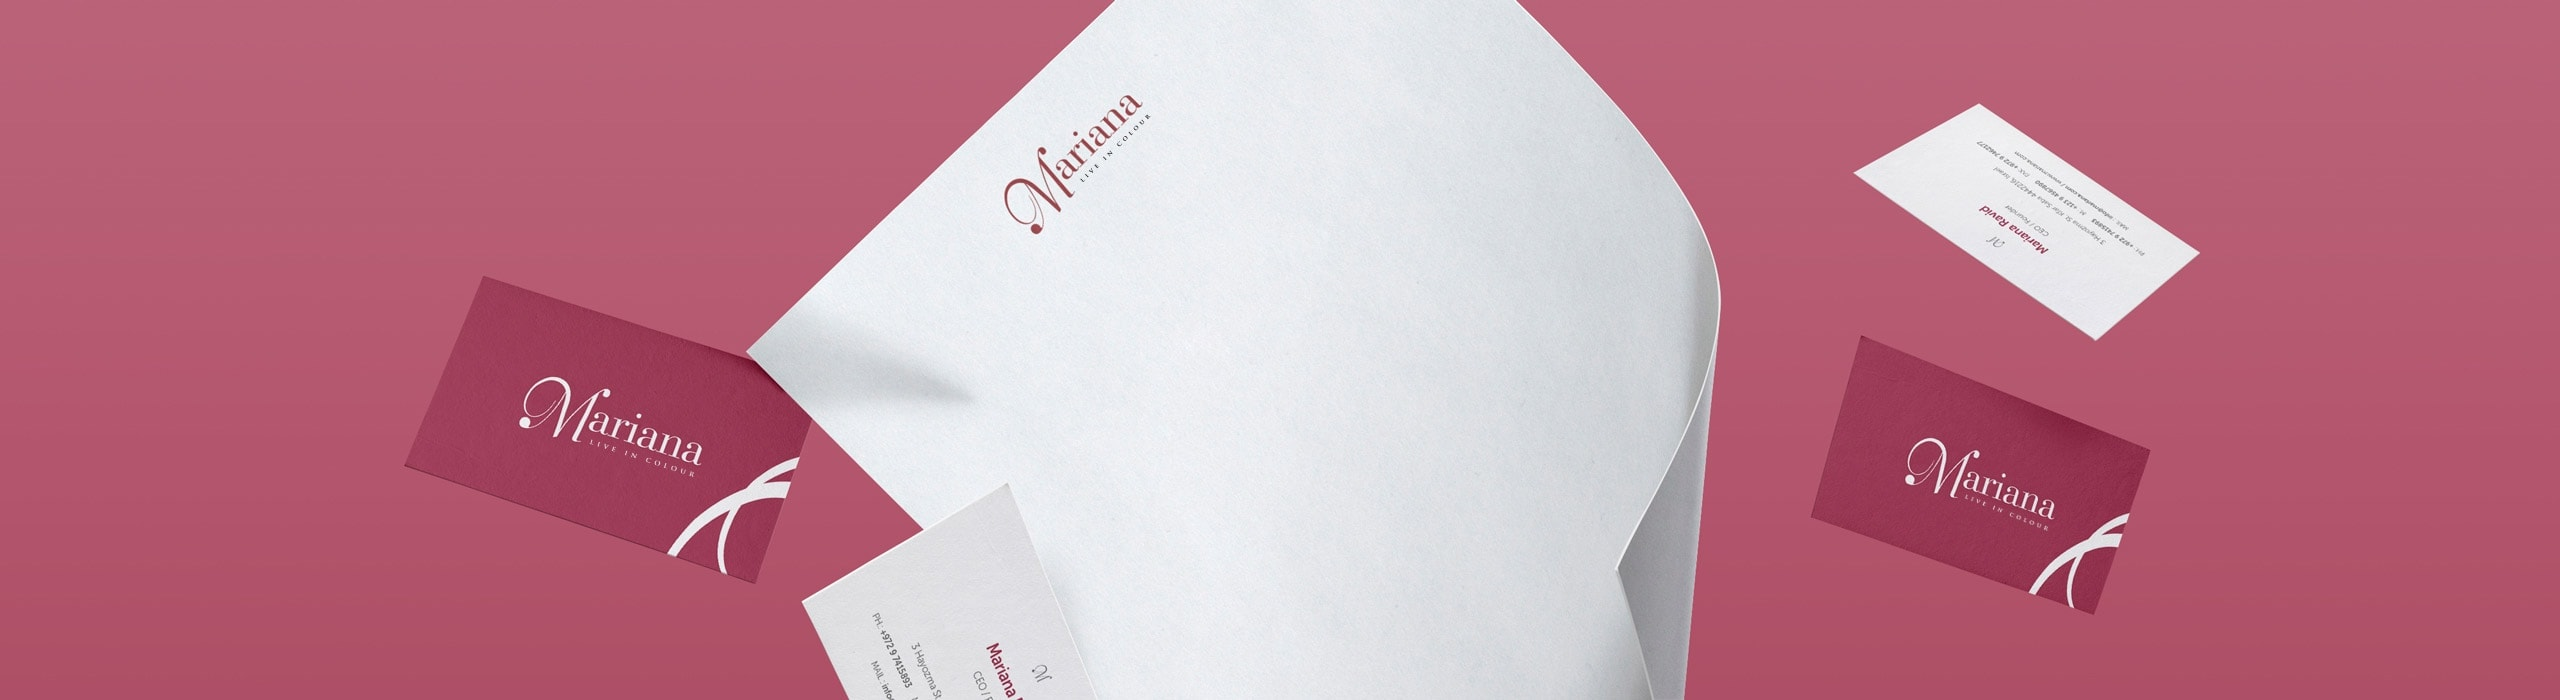 Mariana - natie-mariana-stationary - Natie Branding Agency